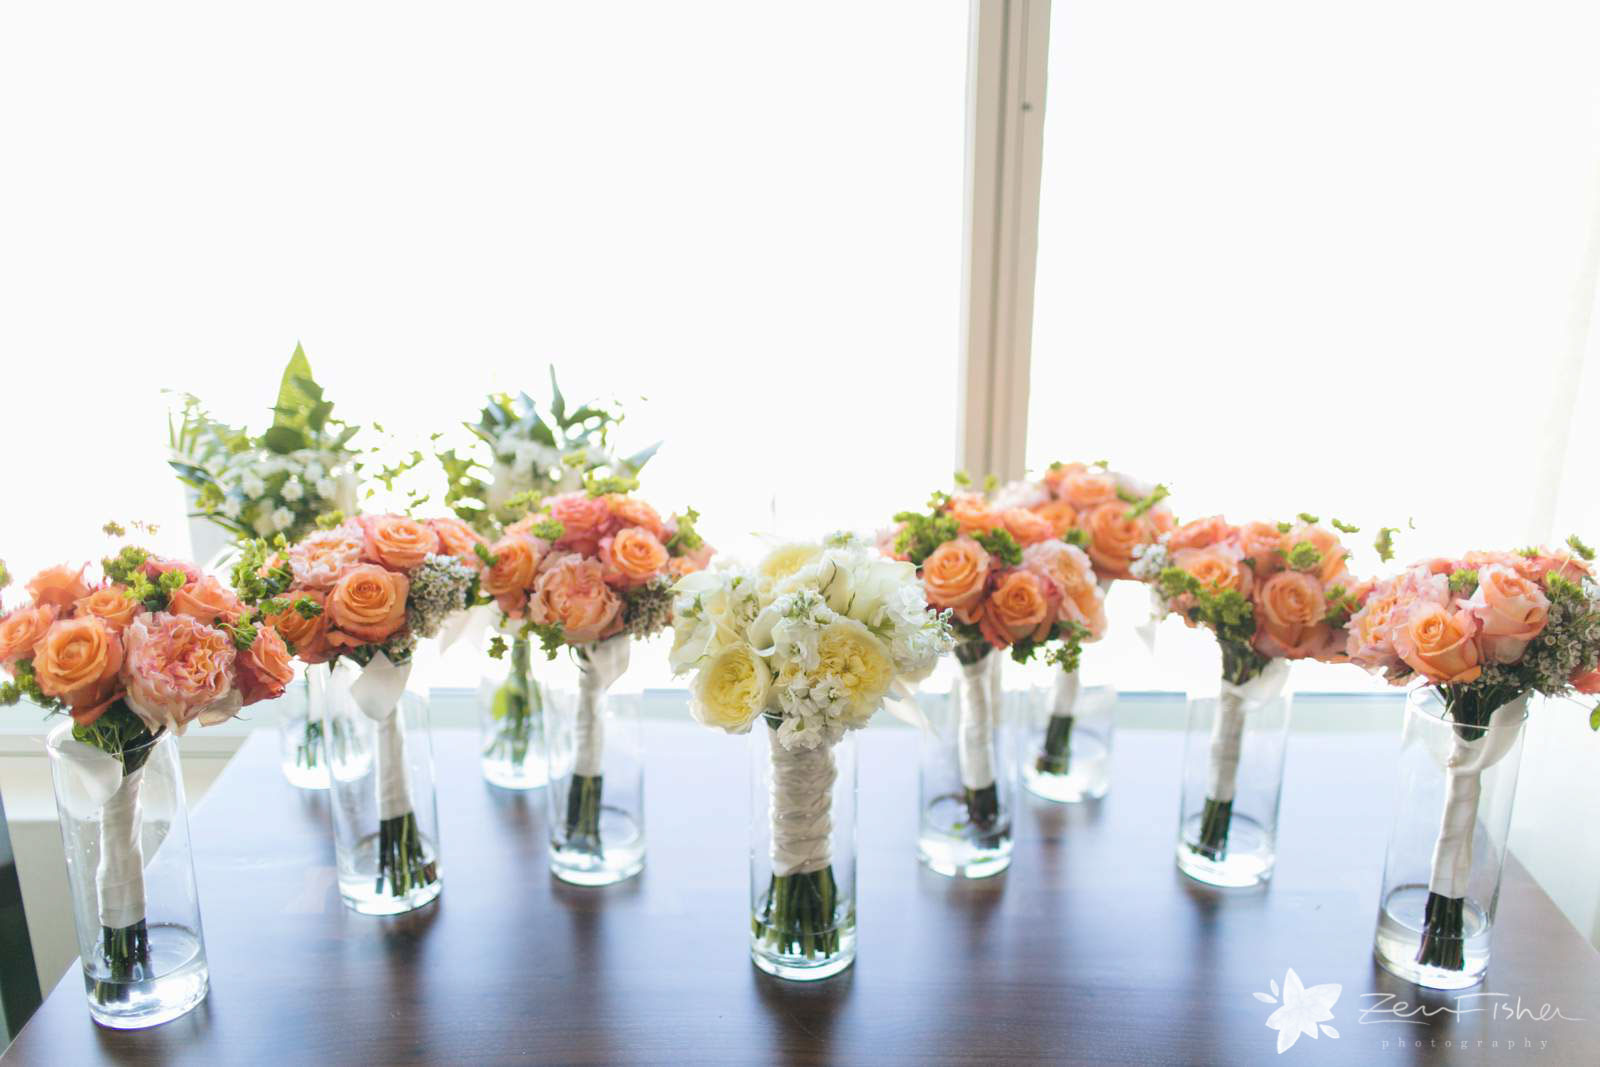 Bouquets lined up on a table in front of a window in vases, bouquet with orange and pink roses.